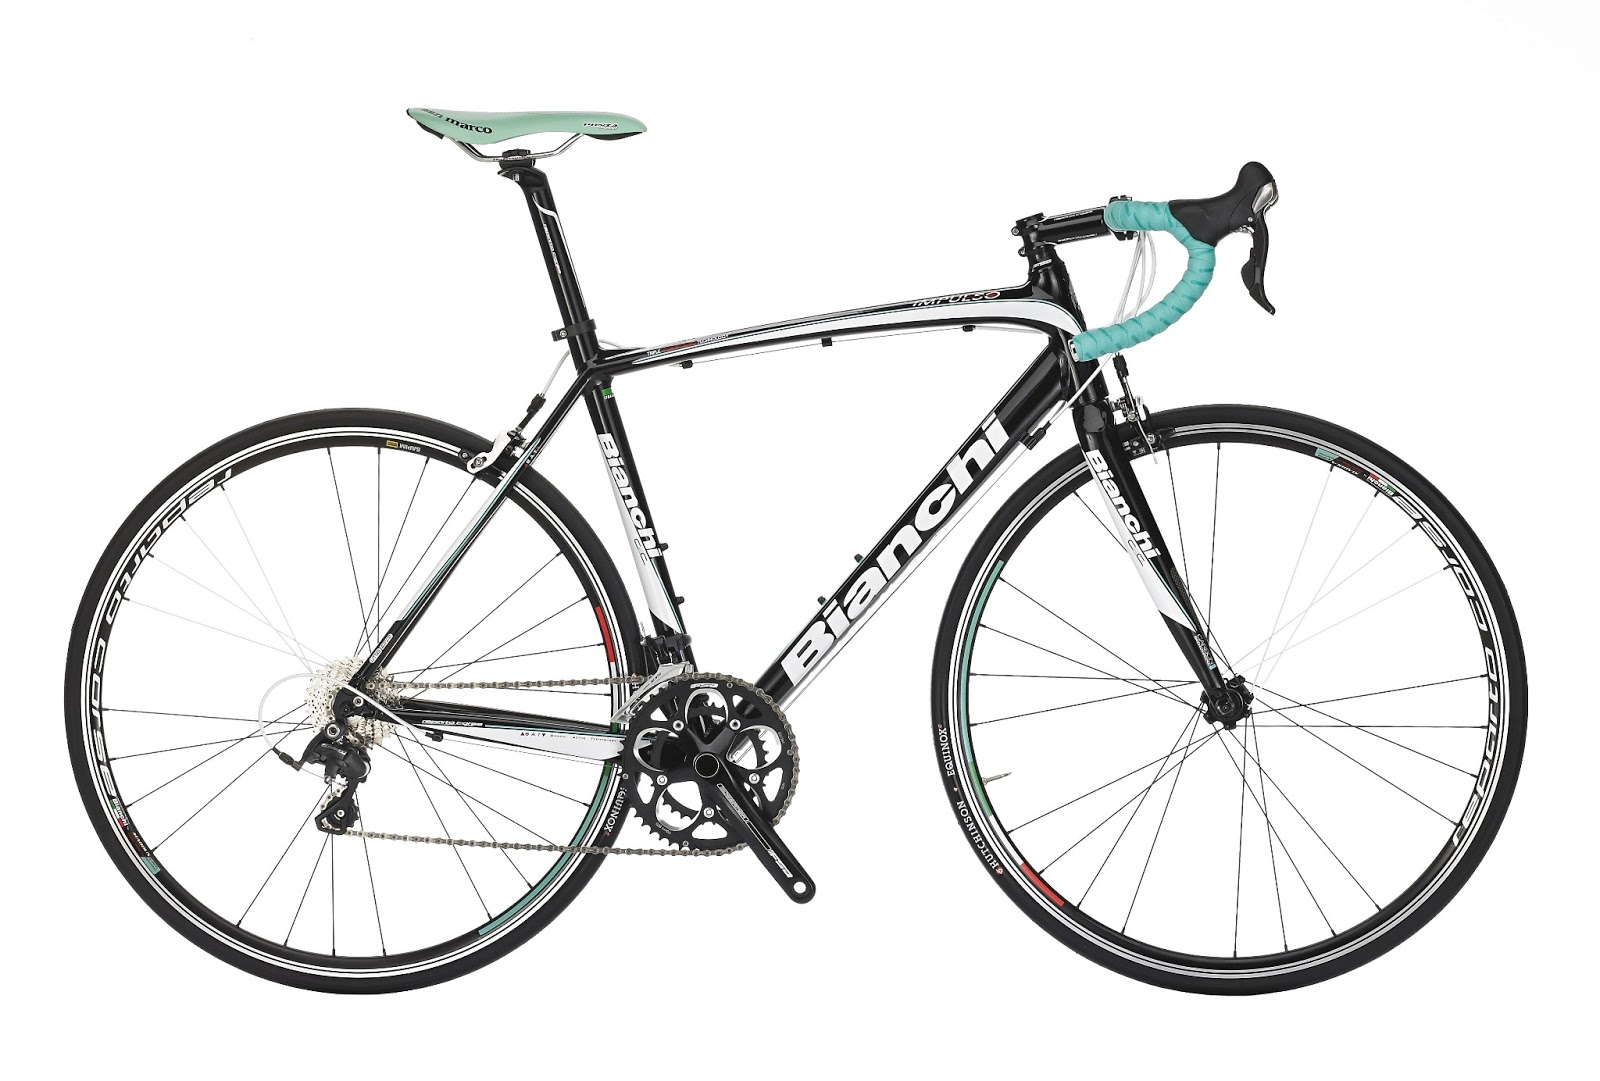 Veloce Cycling And Bike Rental Company Introducing Bianchi Impulso With Campagnolo Veloce Or